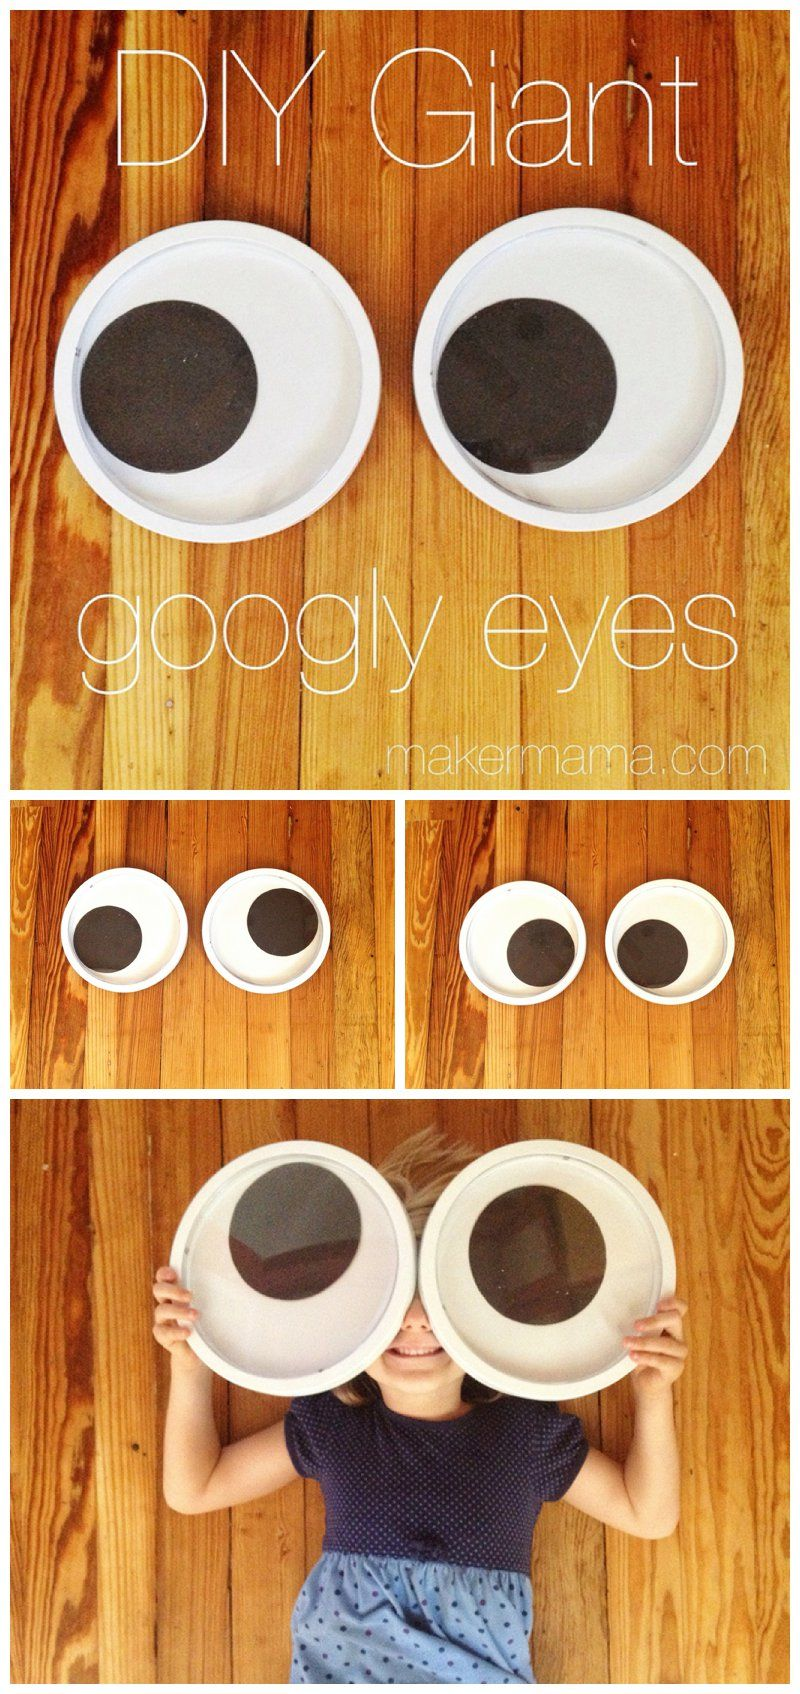 Easy Diy Giant Googly Eyes Perfect For Halloween Decorations